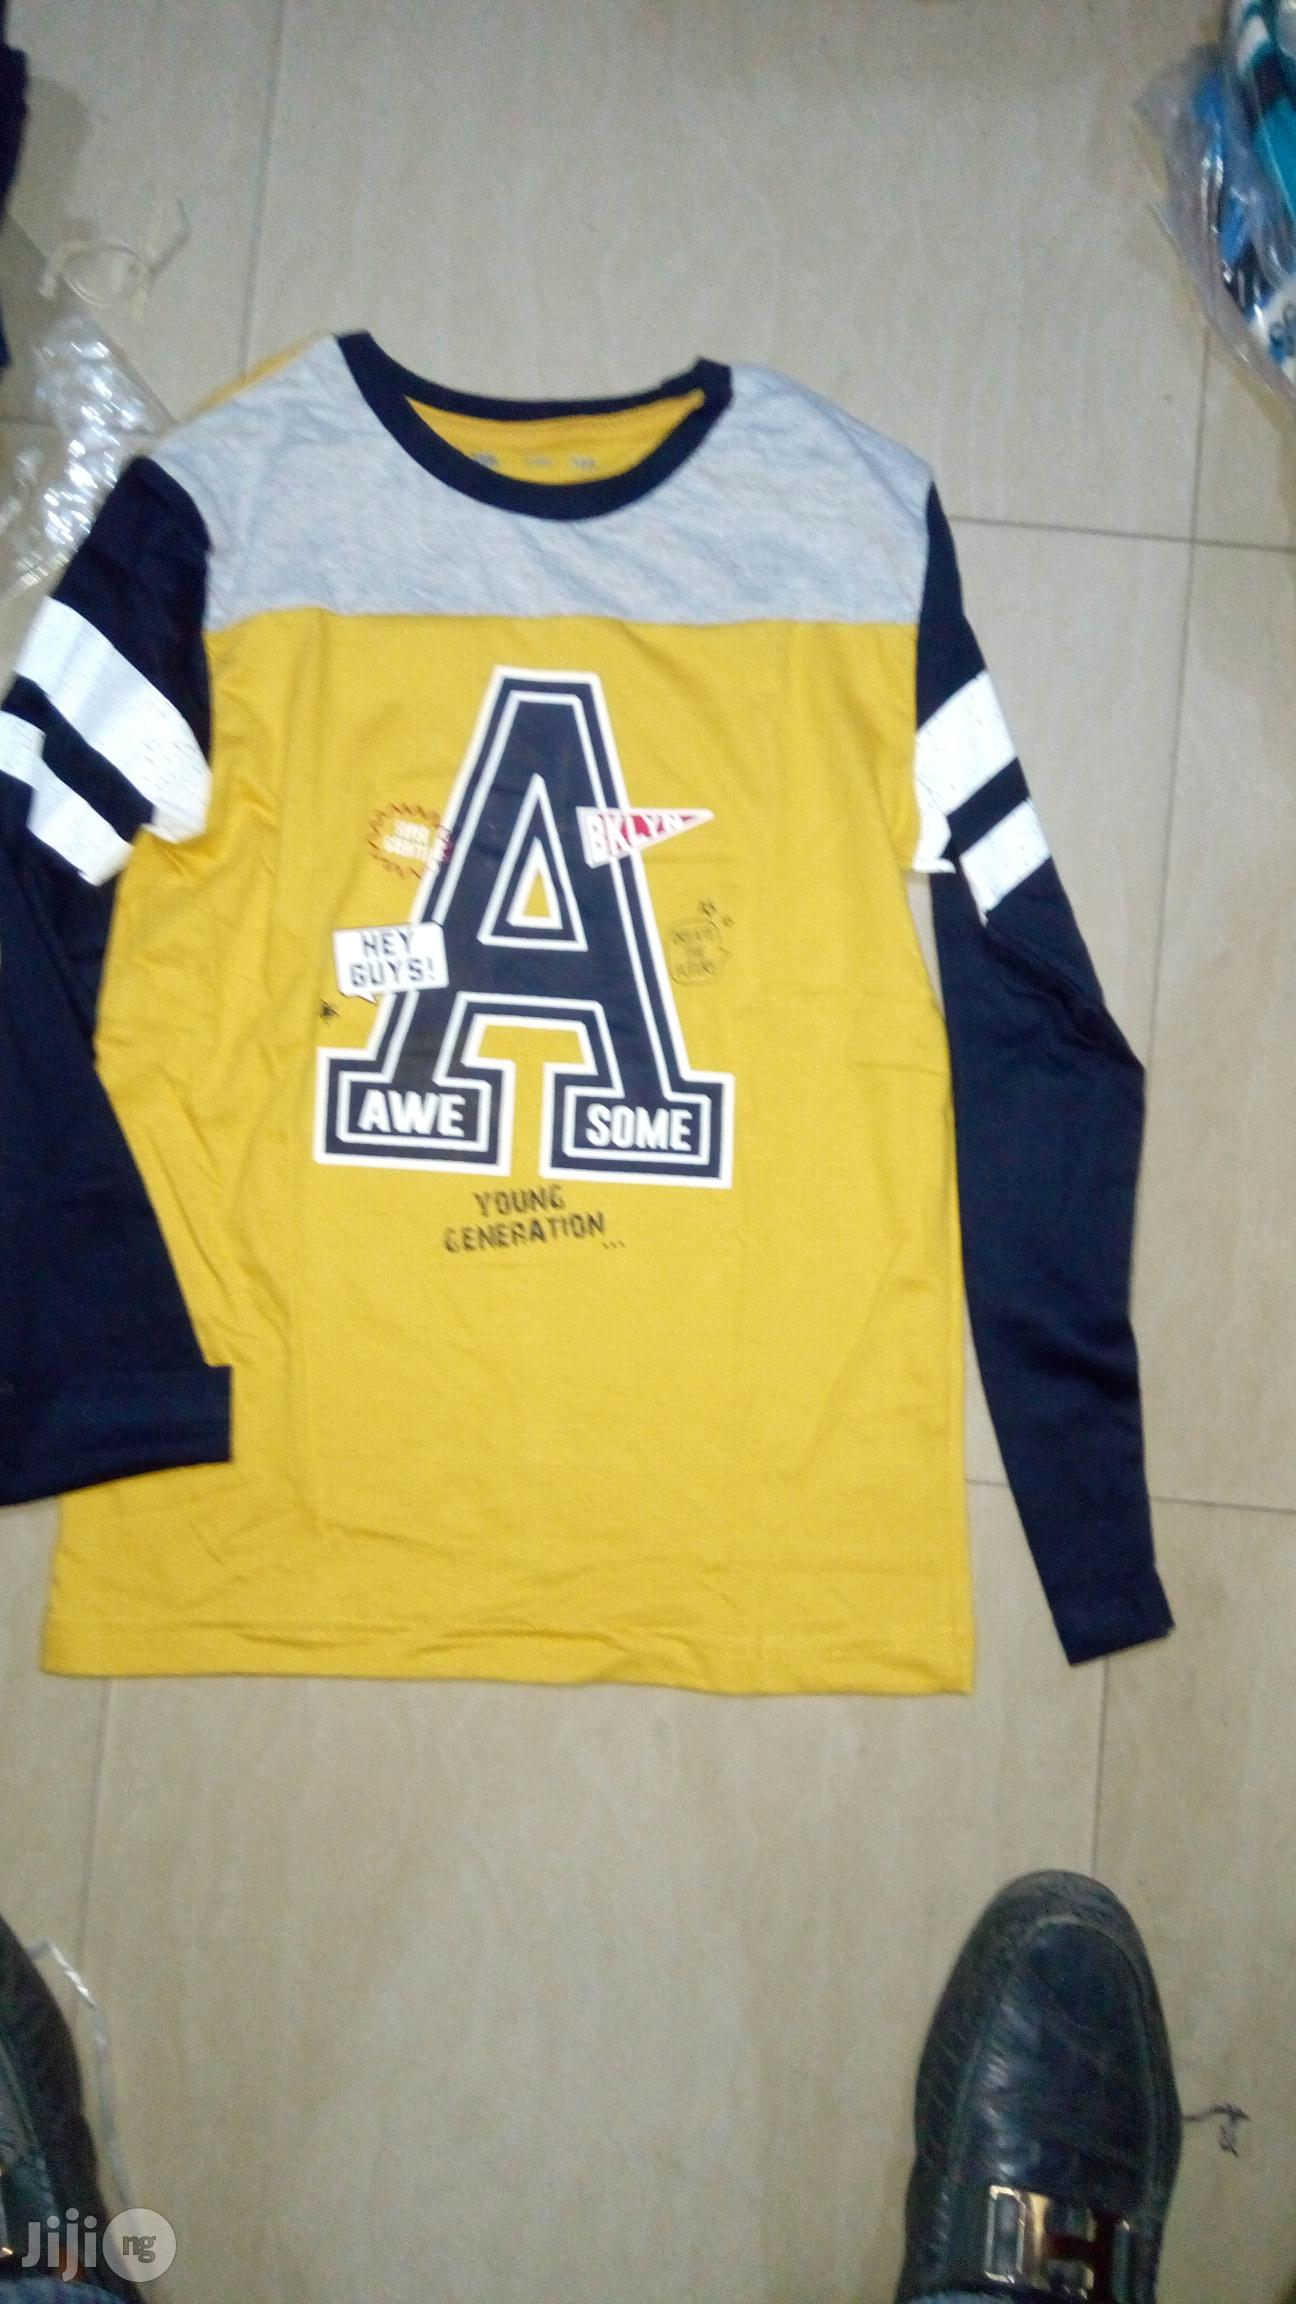 Stock Boys Polo | Children's Clothing for sale in Yaba, Lagos State, Nigeria